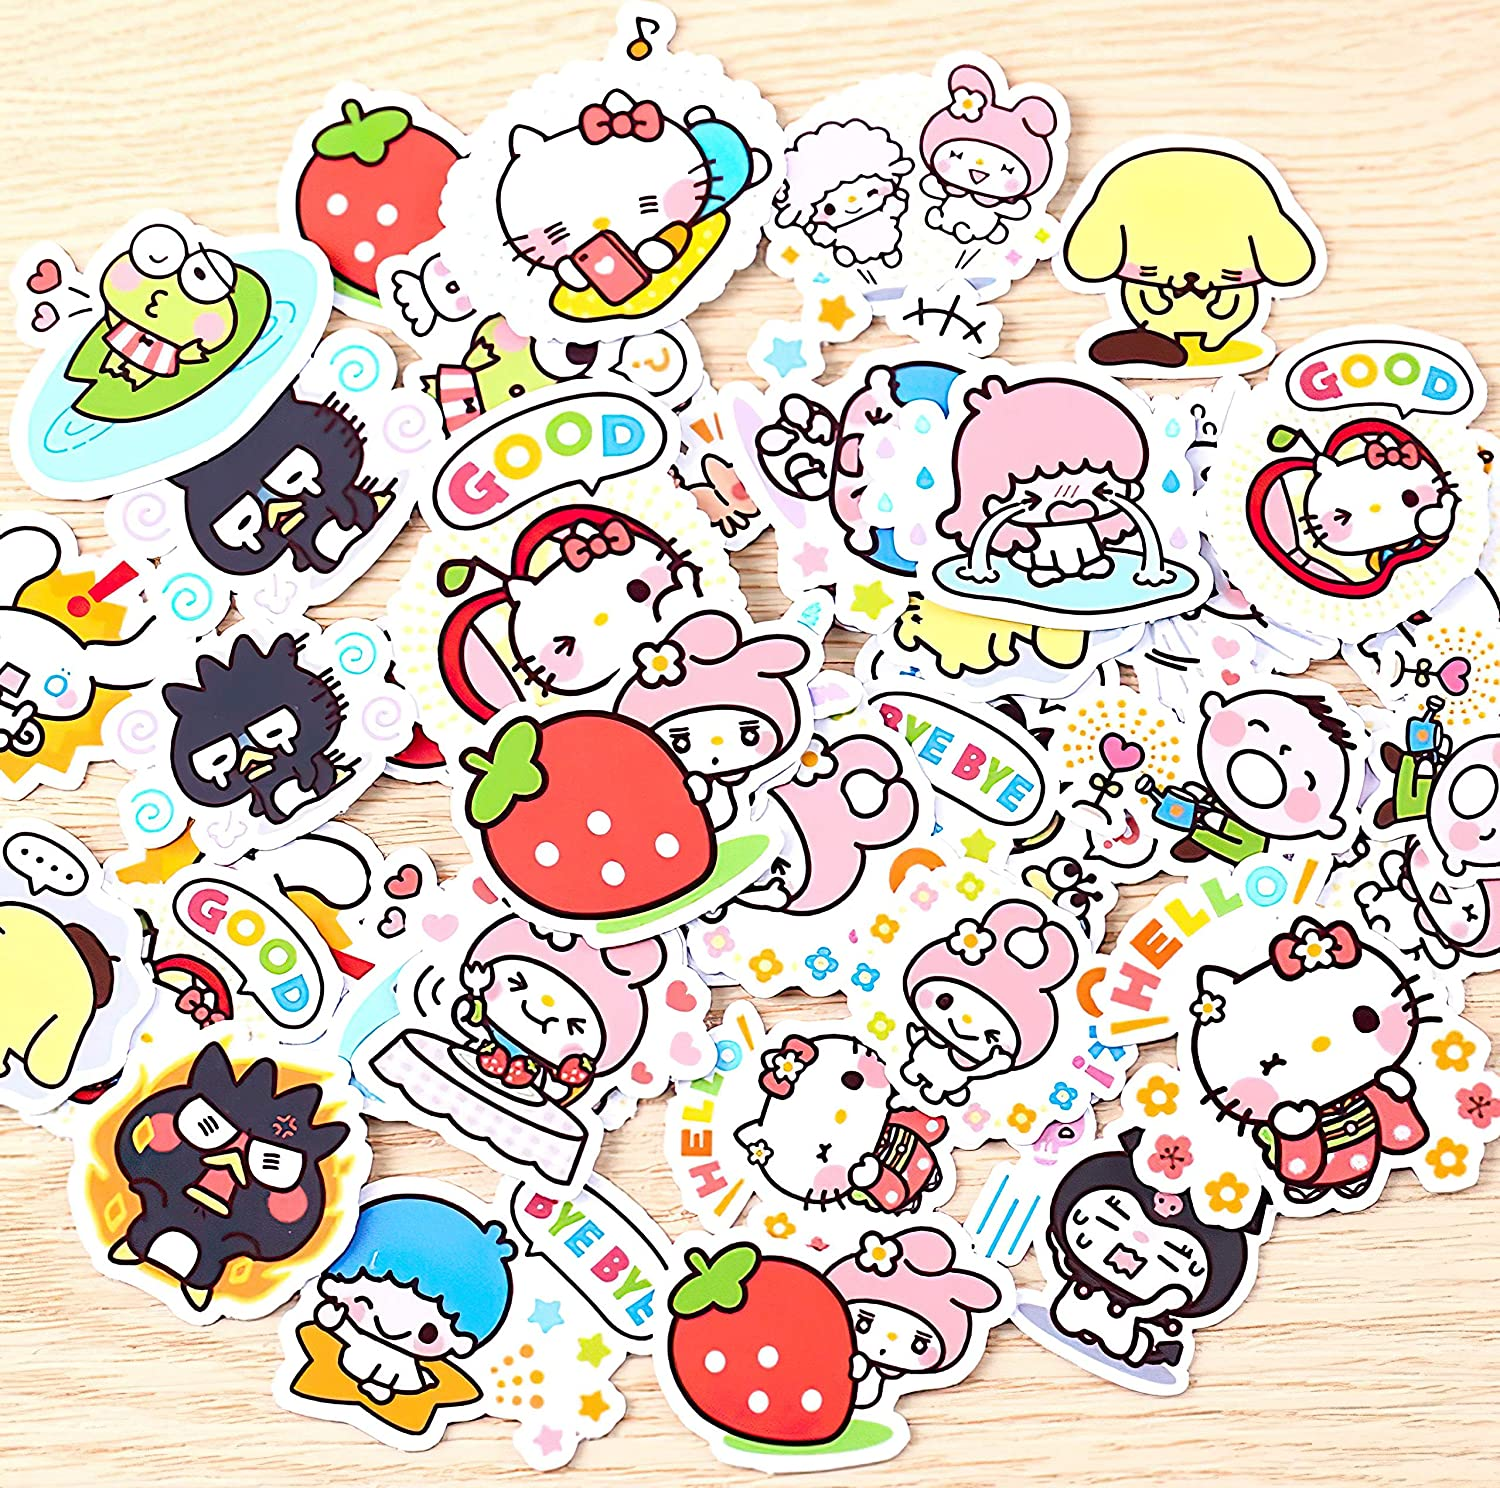 40Pcs Creative Kawaii self-Made Sanrio Love Girl Stickers Beautiful Stickers/Decorative Sticker/DIY Craft Photo